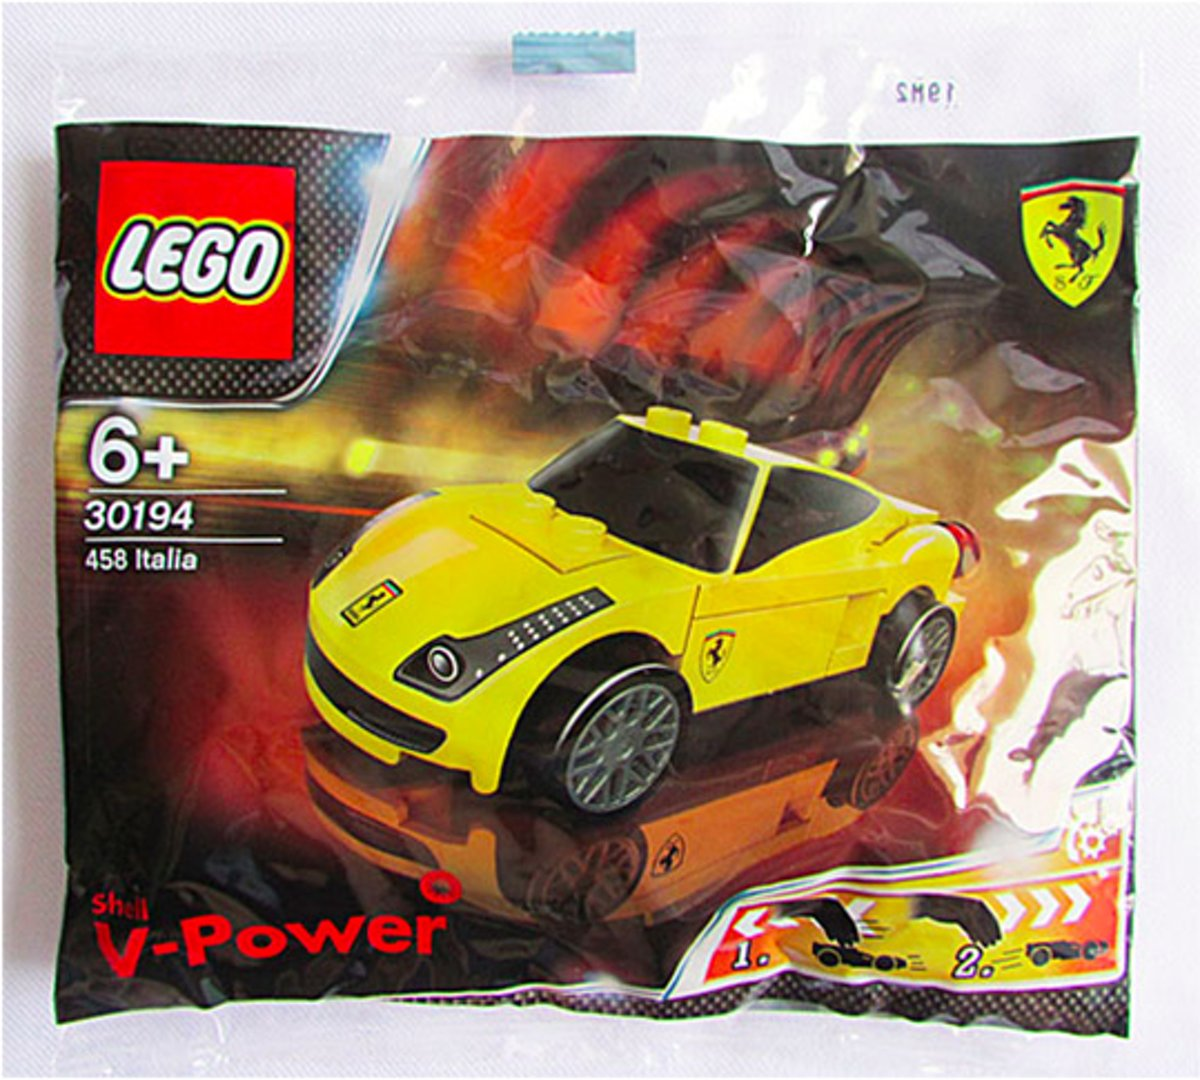 LEGO V-Power 30194 Ferrari 458 Italia